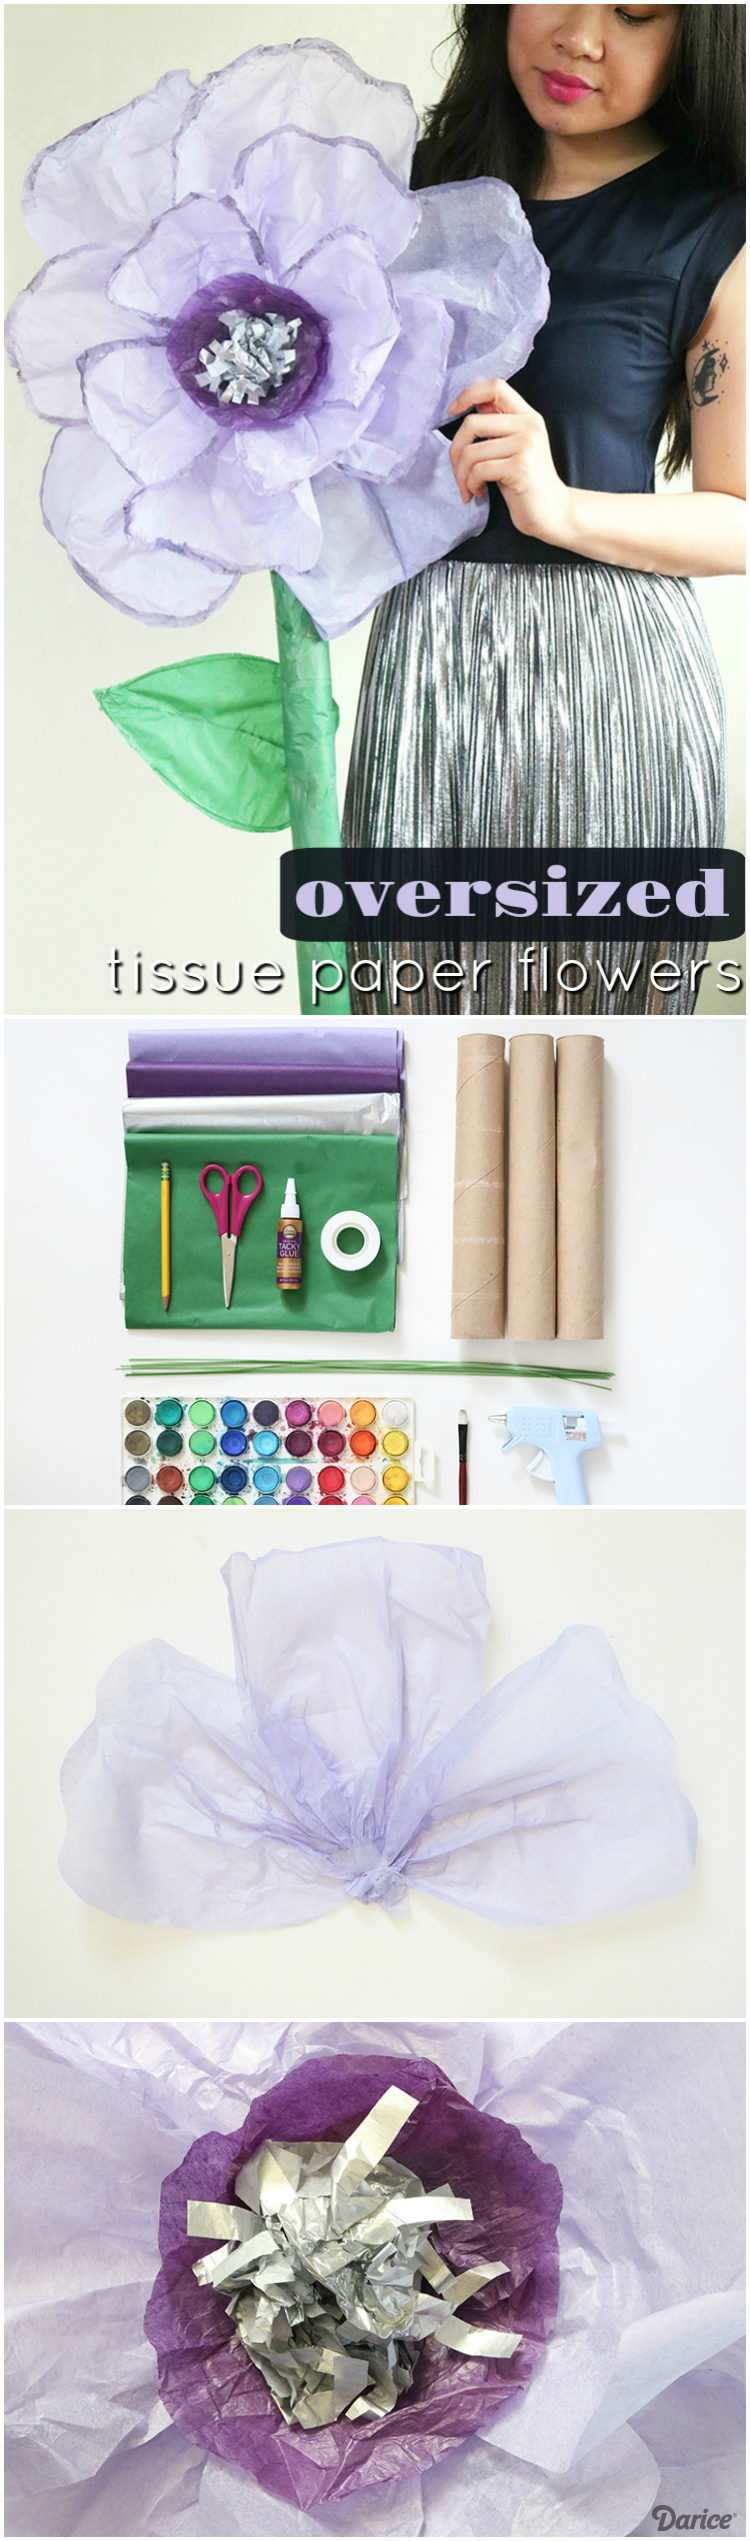 How To Make A Tissue Paper Flower Giant Sized Darice Wedding